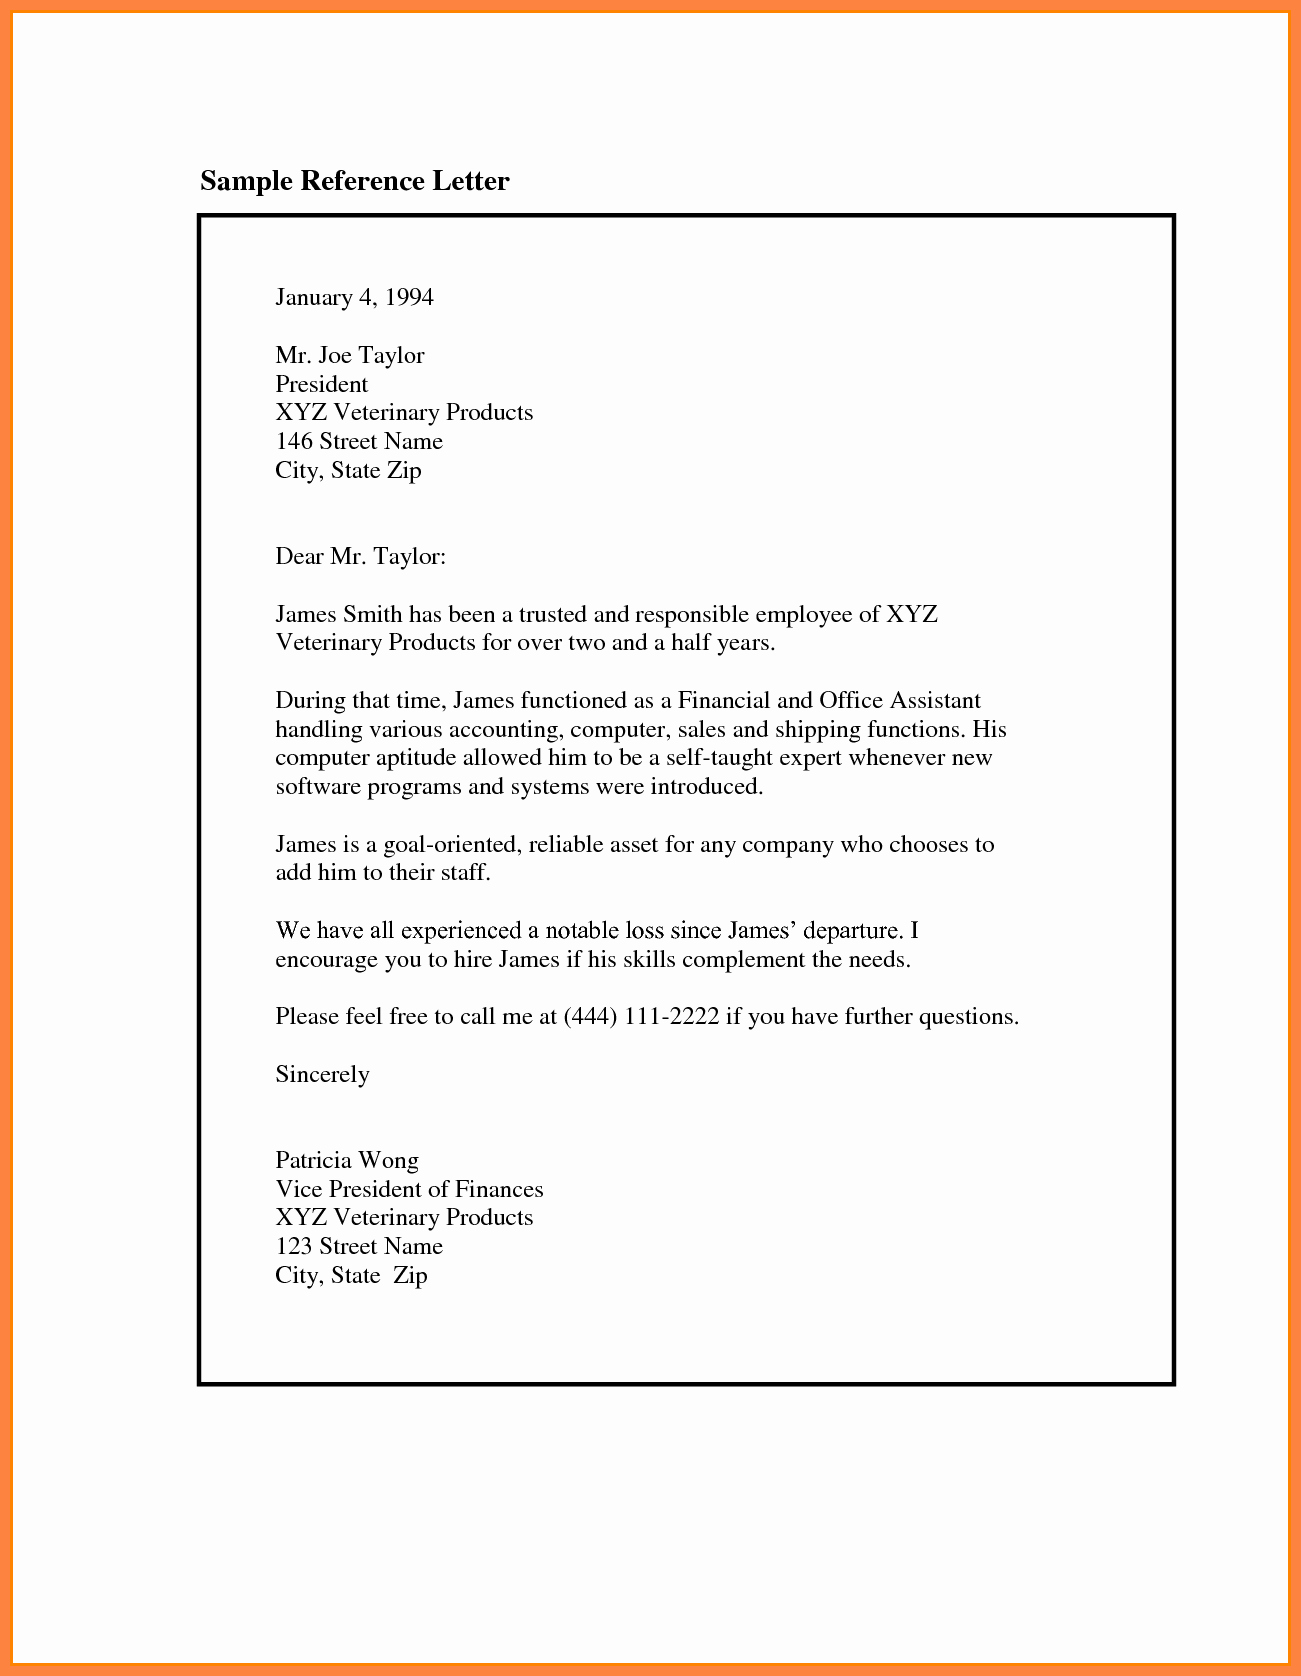 Samples Of Employee Reference Letters Unique 9 Re Mendation Letter for Employee